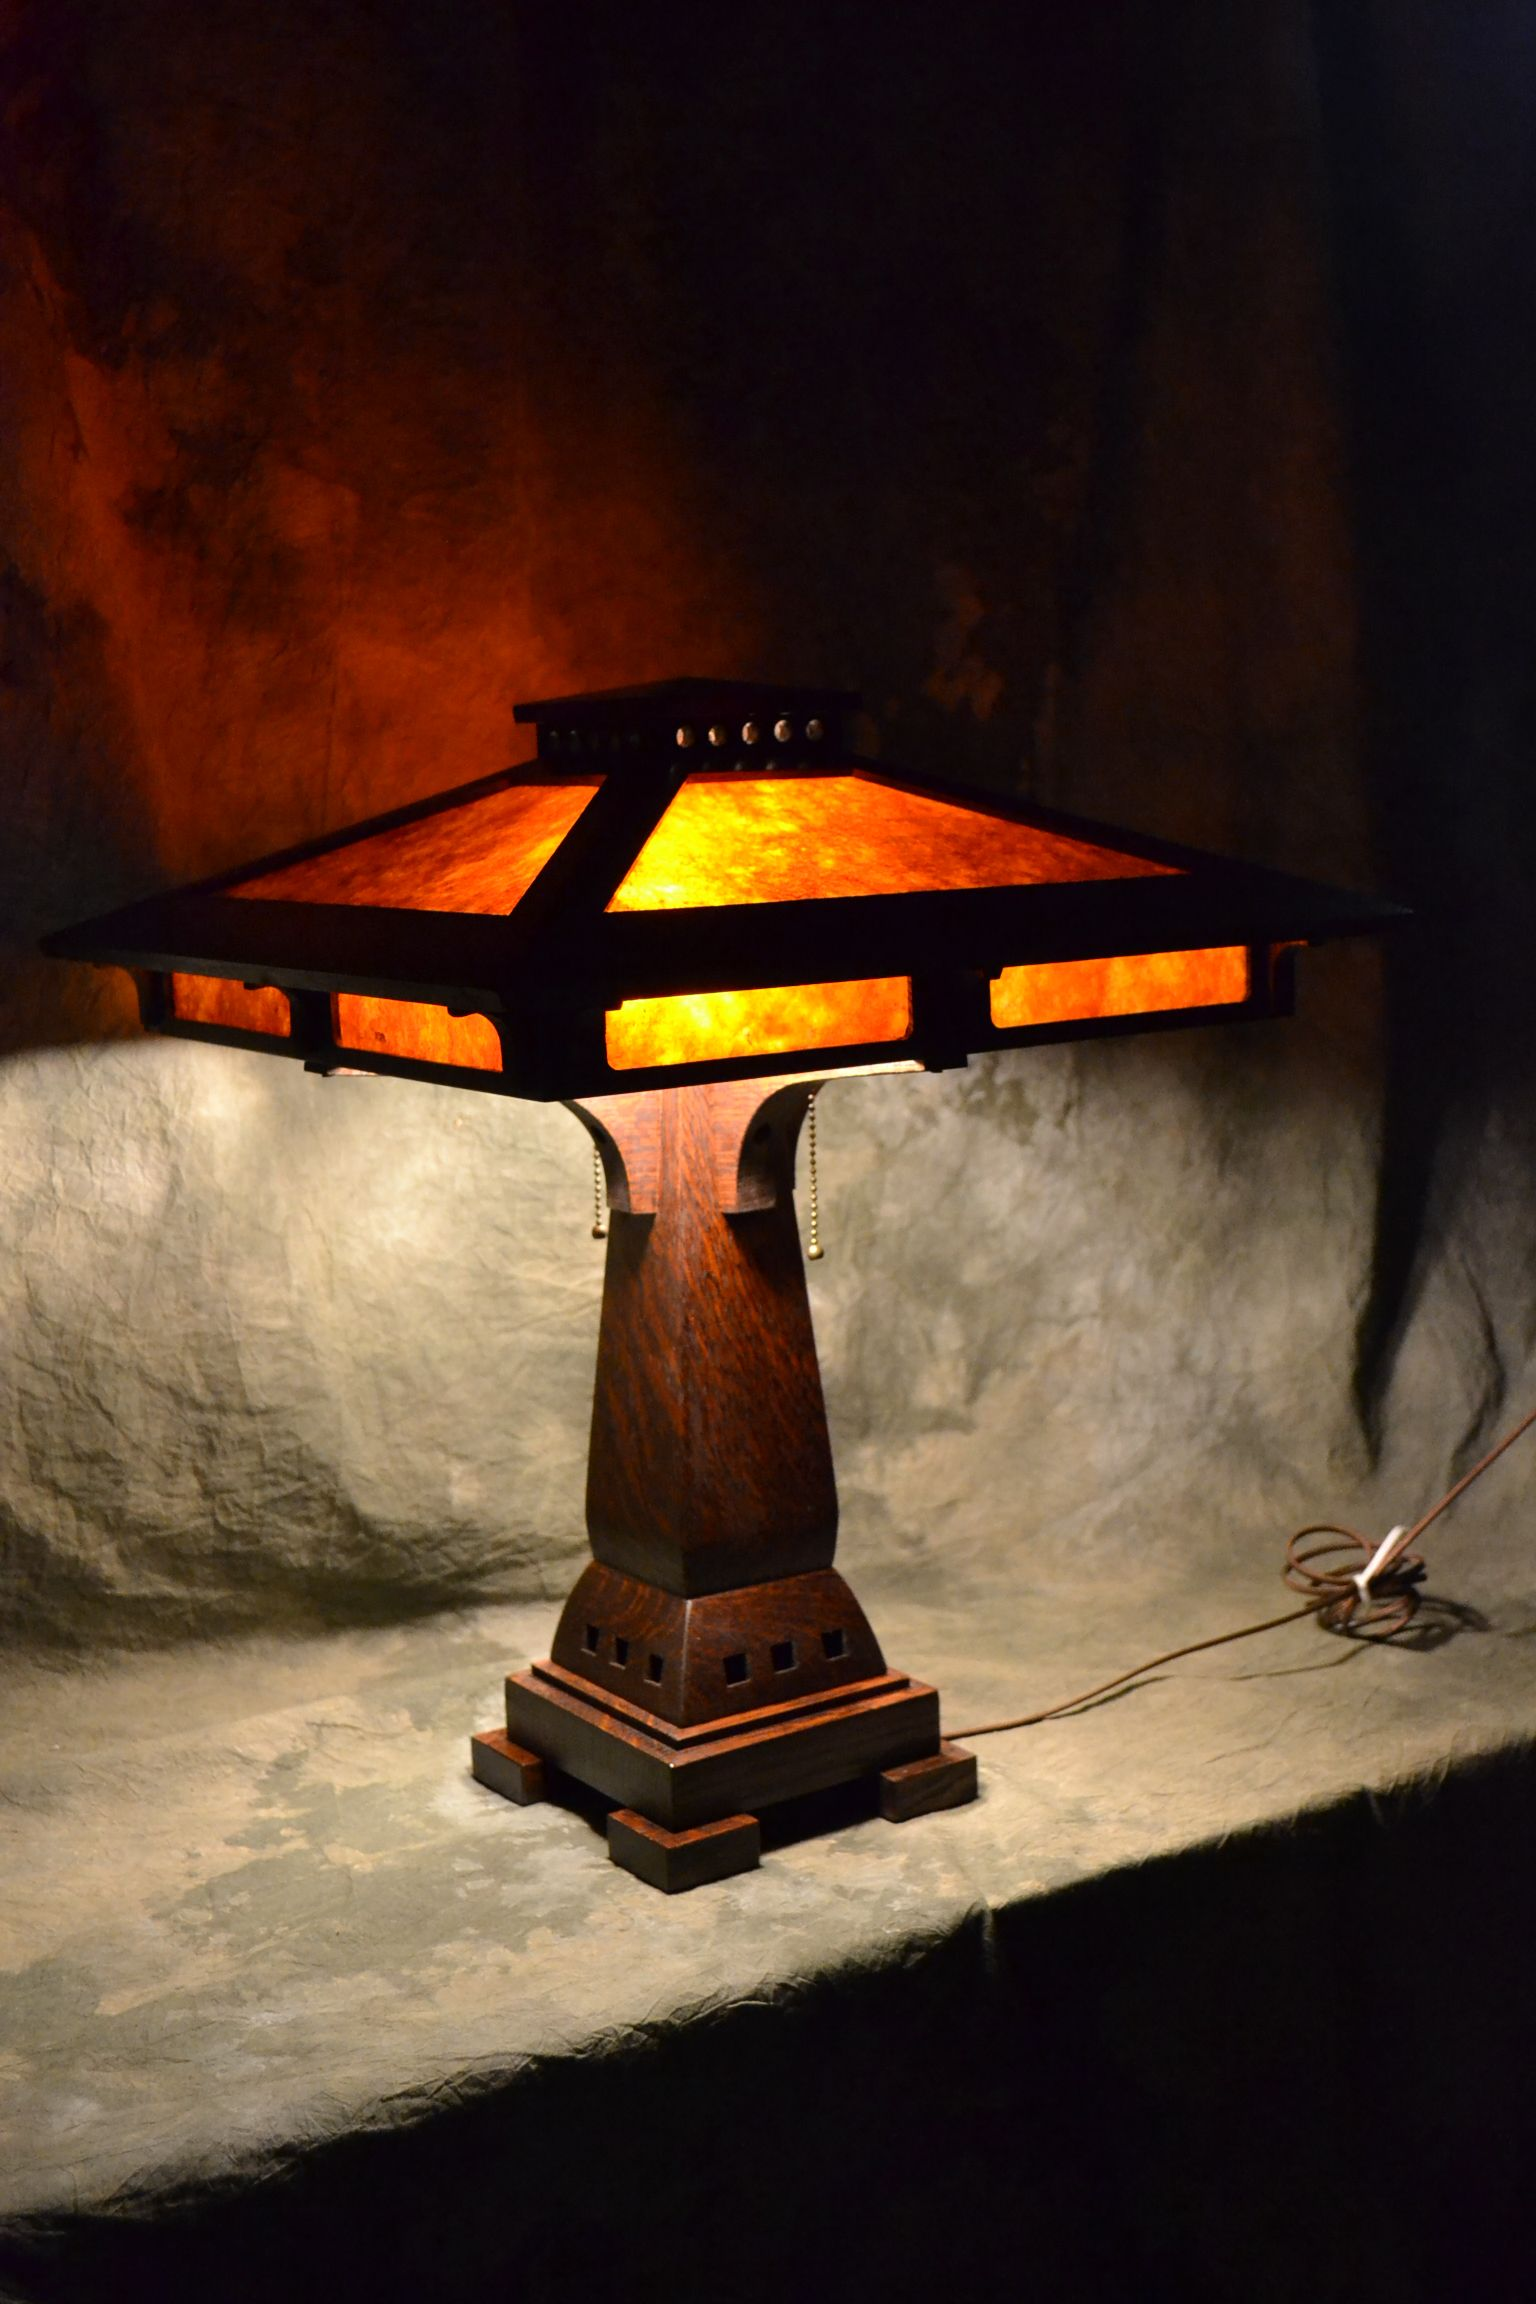 Prairie Craftsman Table Lamp | Lamp, Table lamp, Craftsman ...